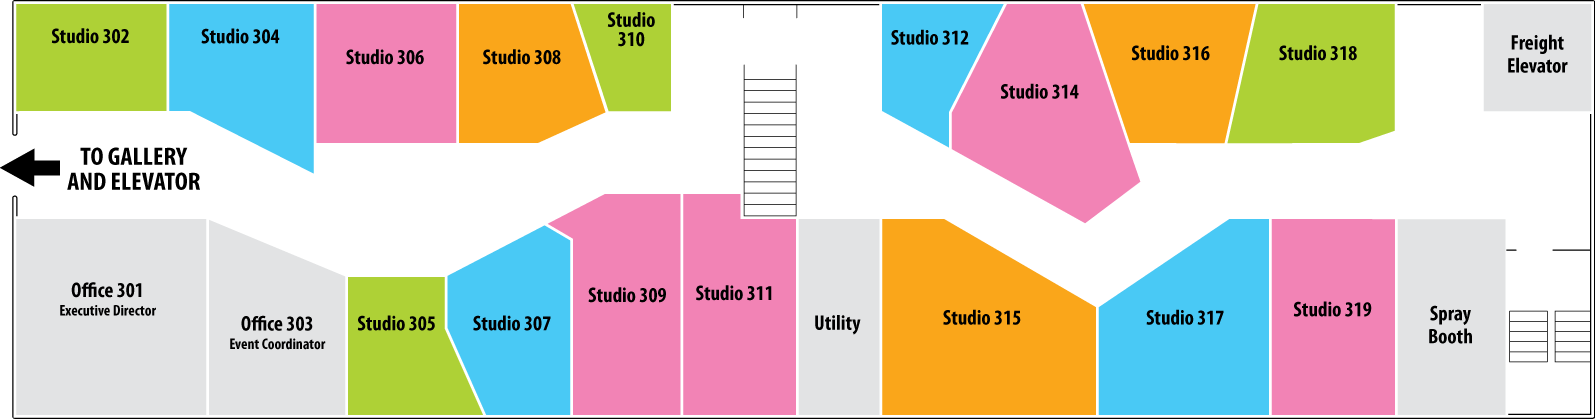 Walk In Art Center Studio Layout